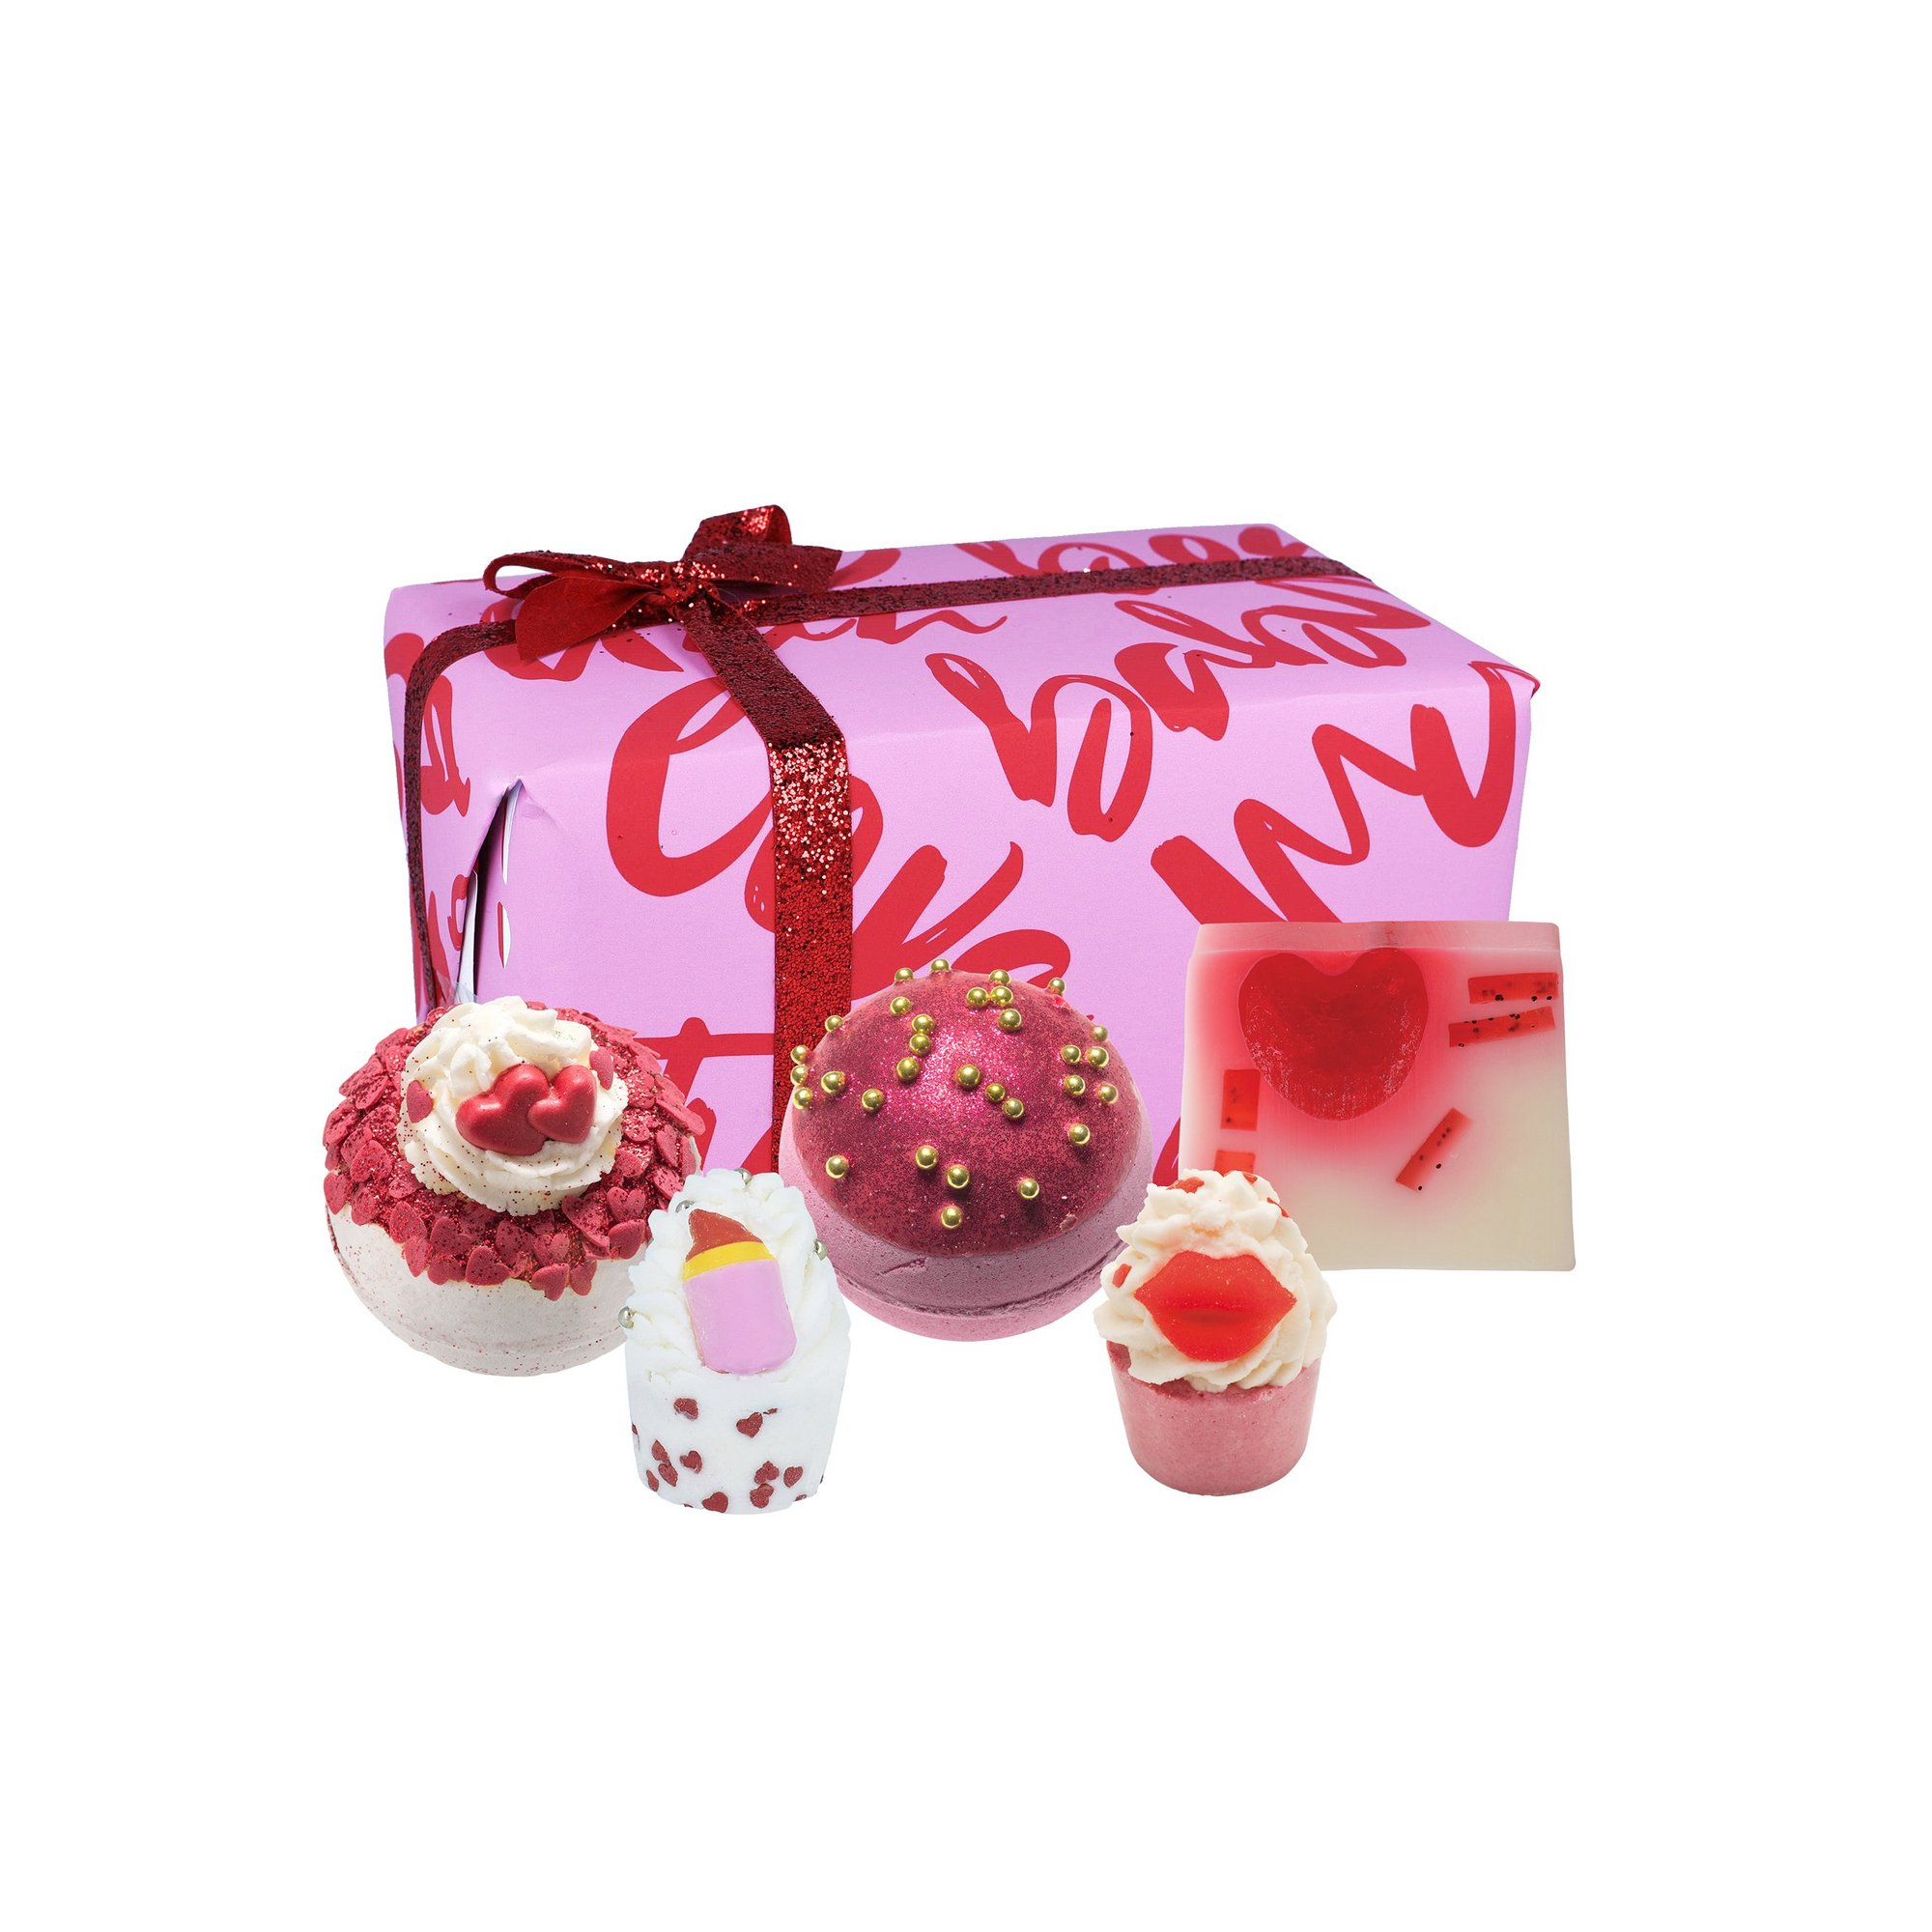 Image of Bomb Cosmetics Date Night Bath Bomb Gift Set